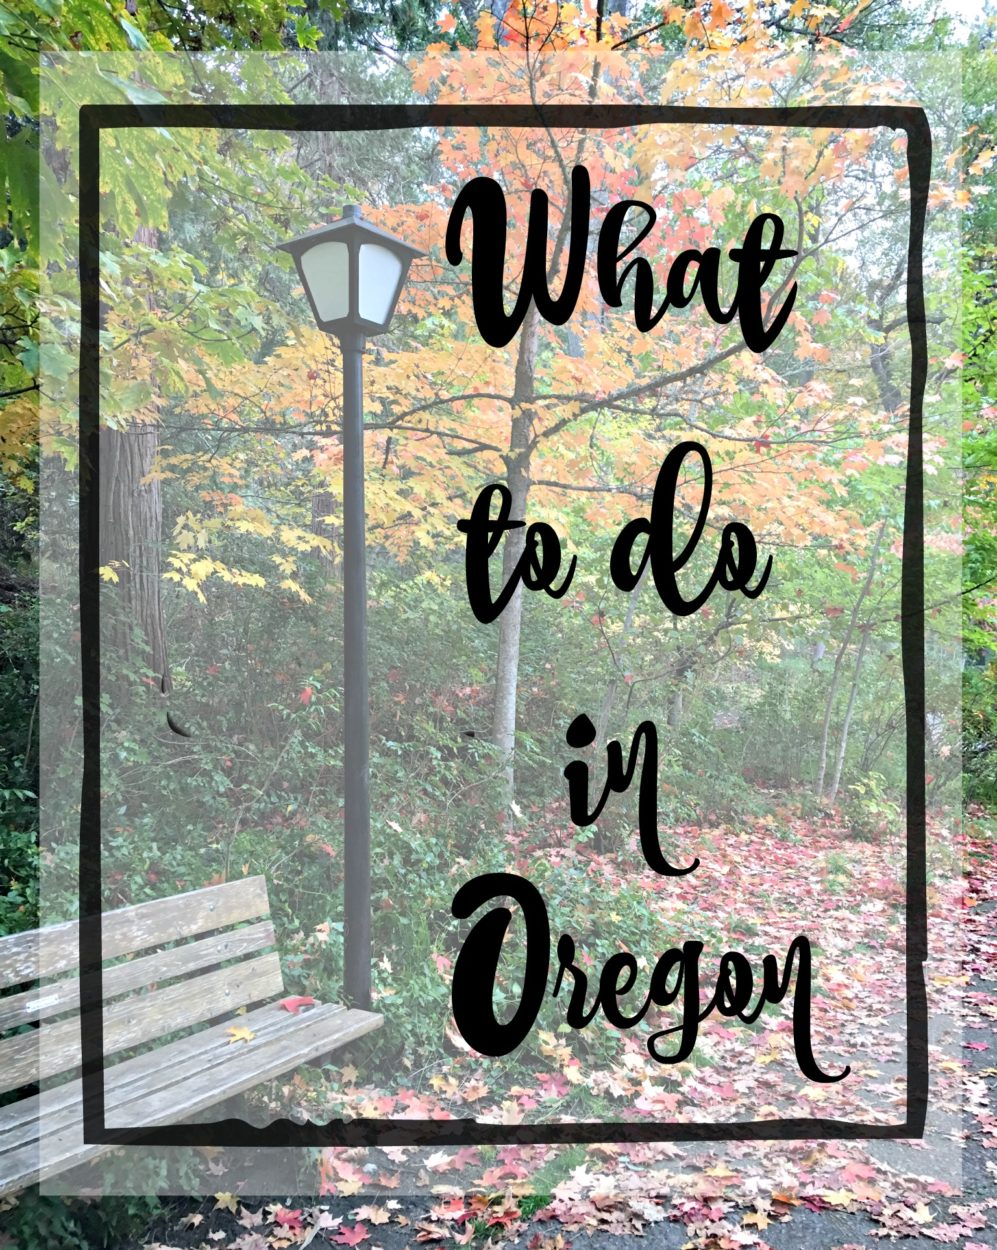 What to do in Oregon blog hop tour. Come see our towns and the different things to do here.